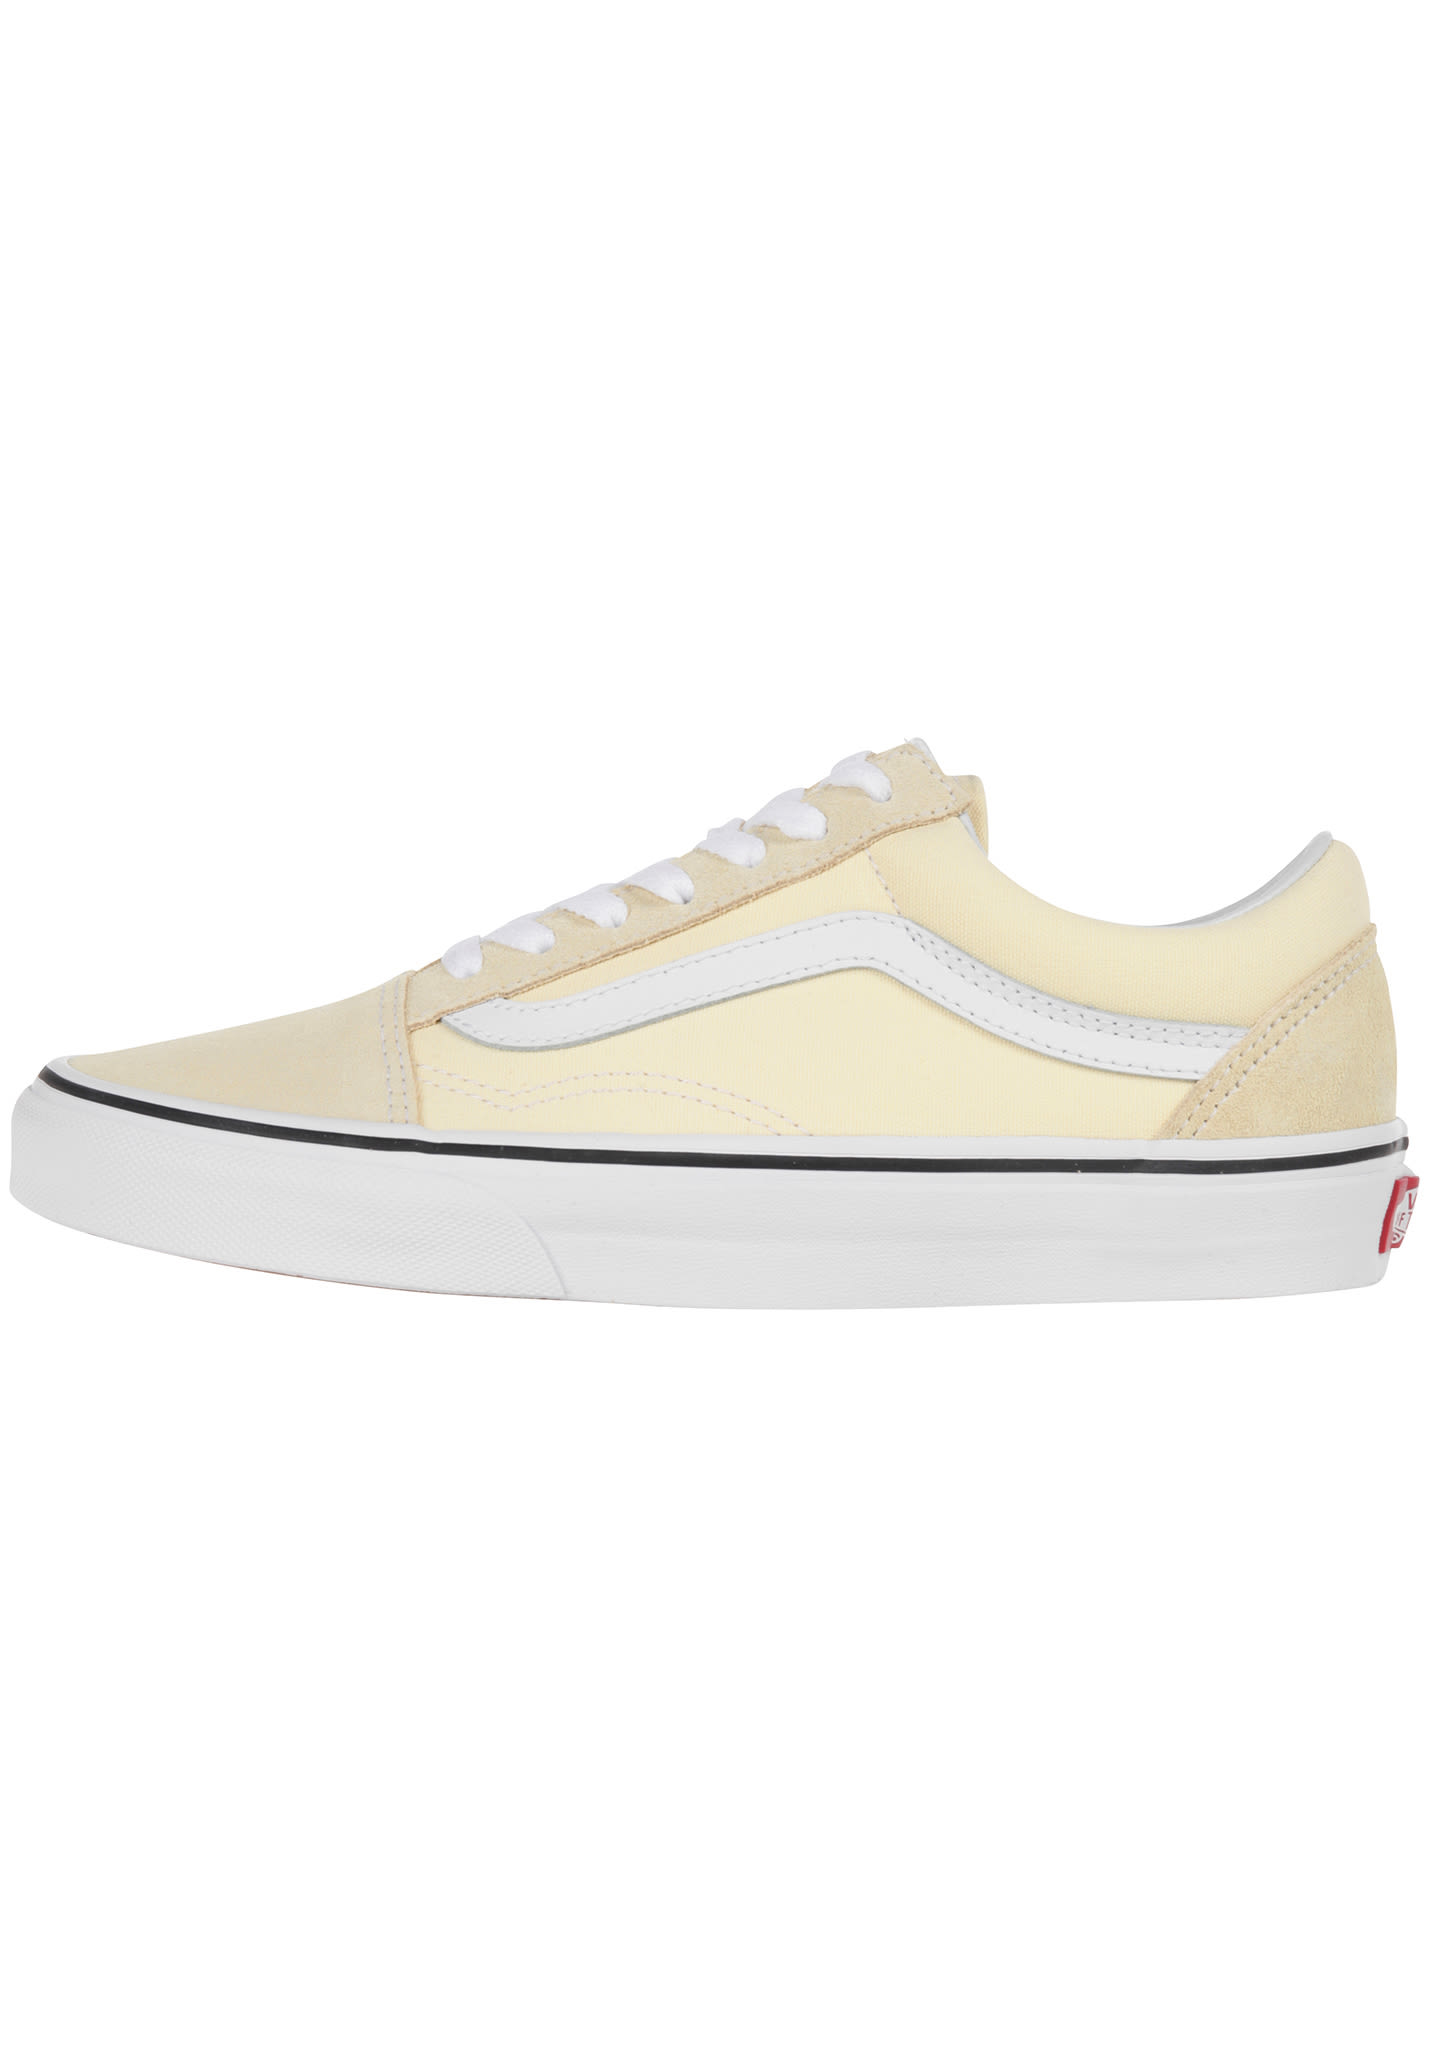 475610084ef Vans Old Skool - Sneakers voor Dames - Geel - Planet Sports